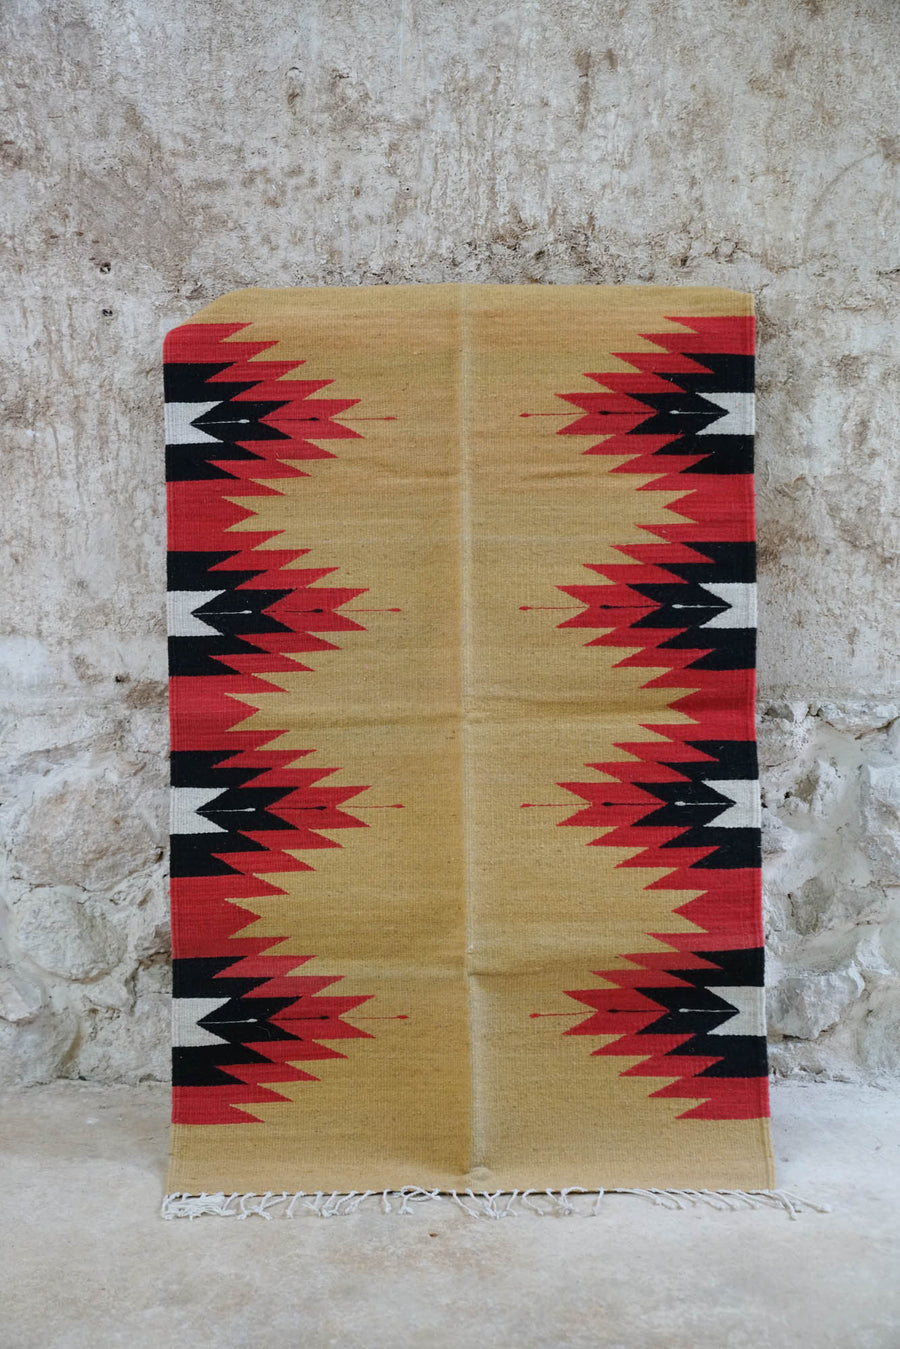 BEAK ZAPOTECA WORLD BY HAND DESING CARPET (2x3 FT)